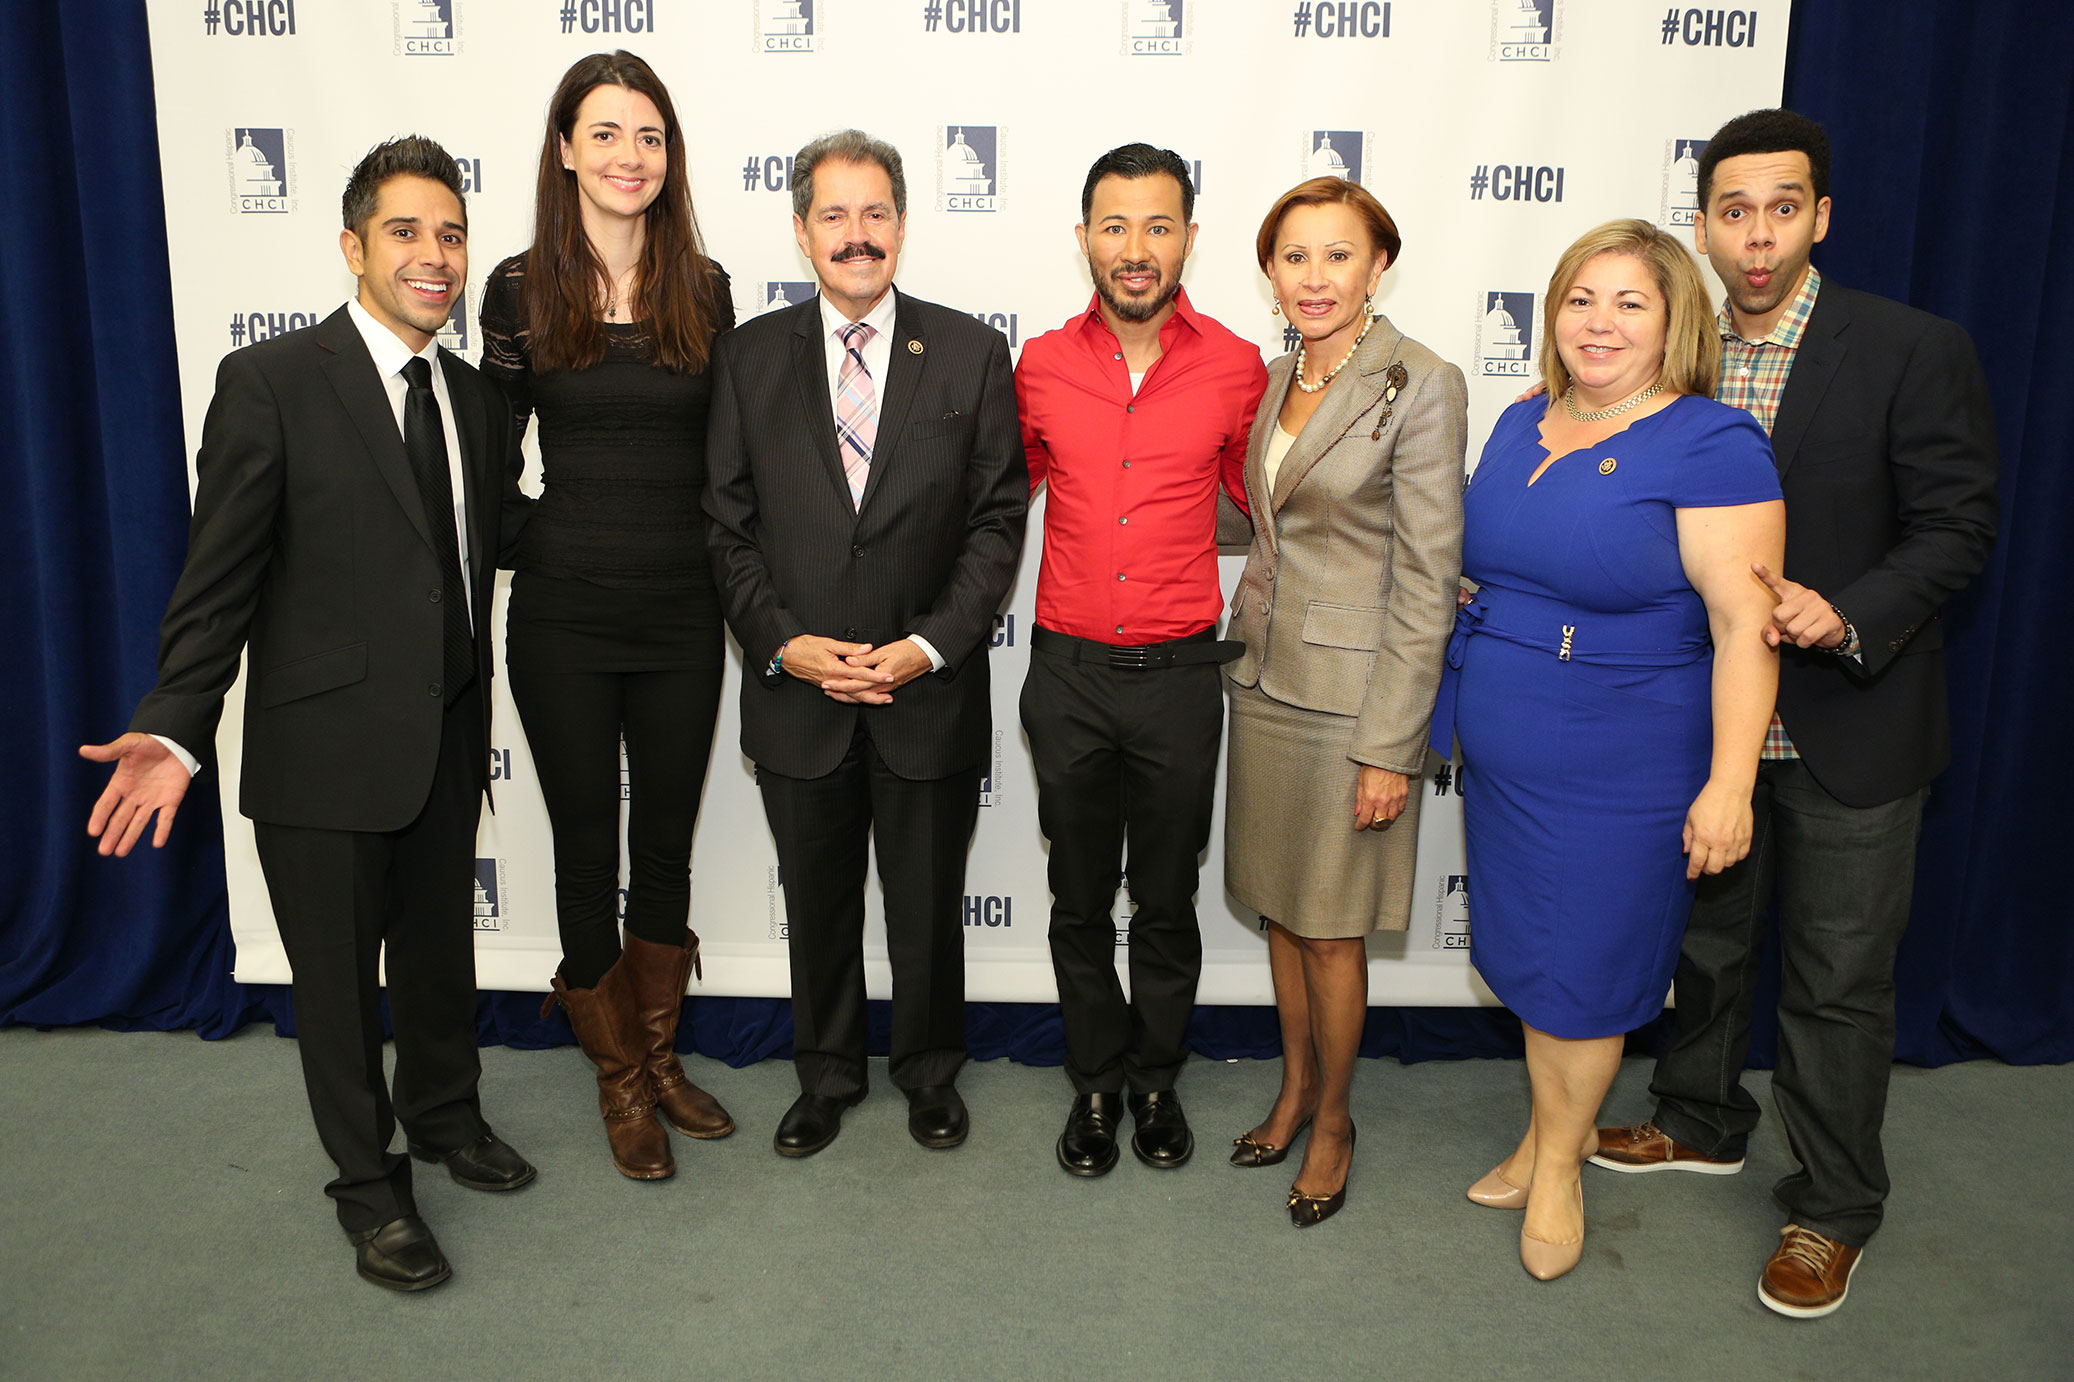 CHCI's 15th Annual Reyes of Comedy